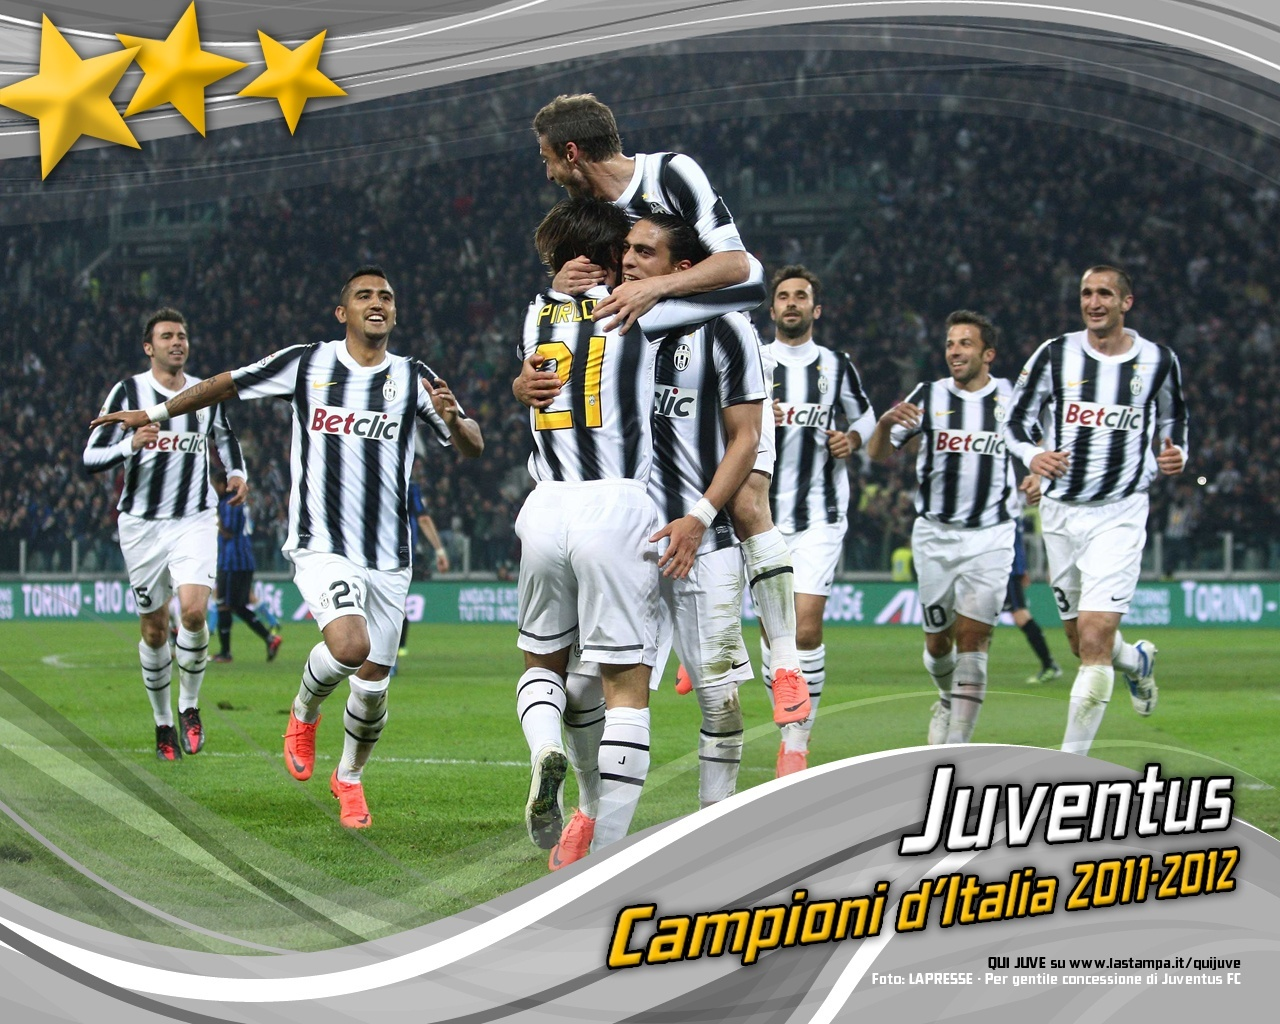 Juventus Club